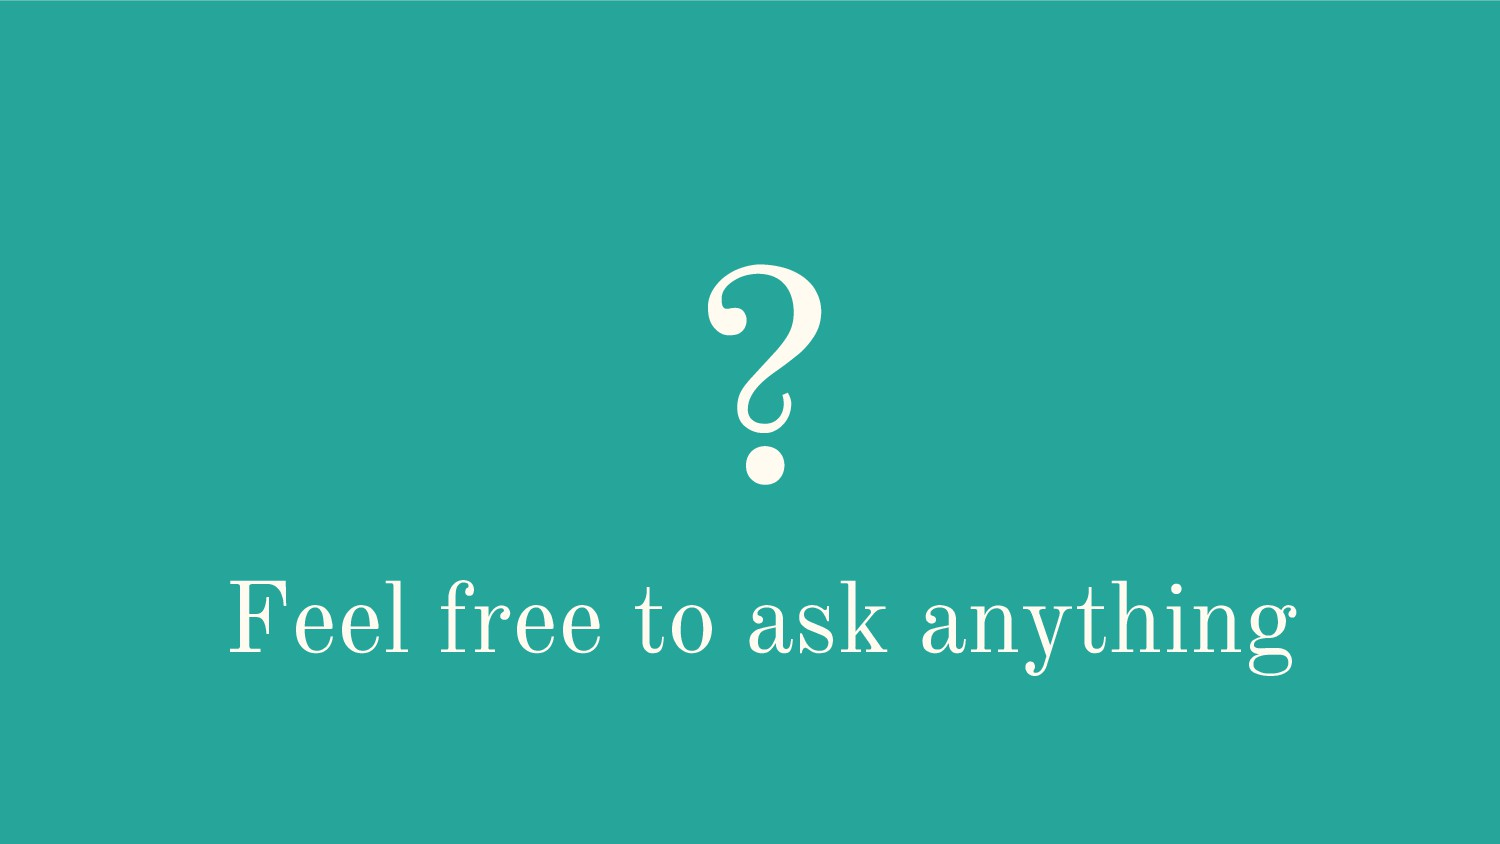 ? Feel free to ask anything